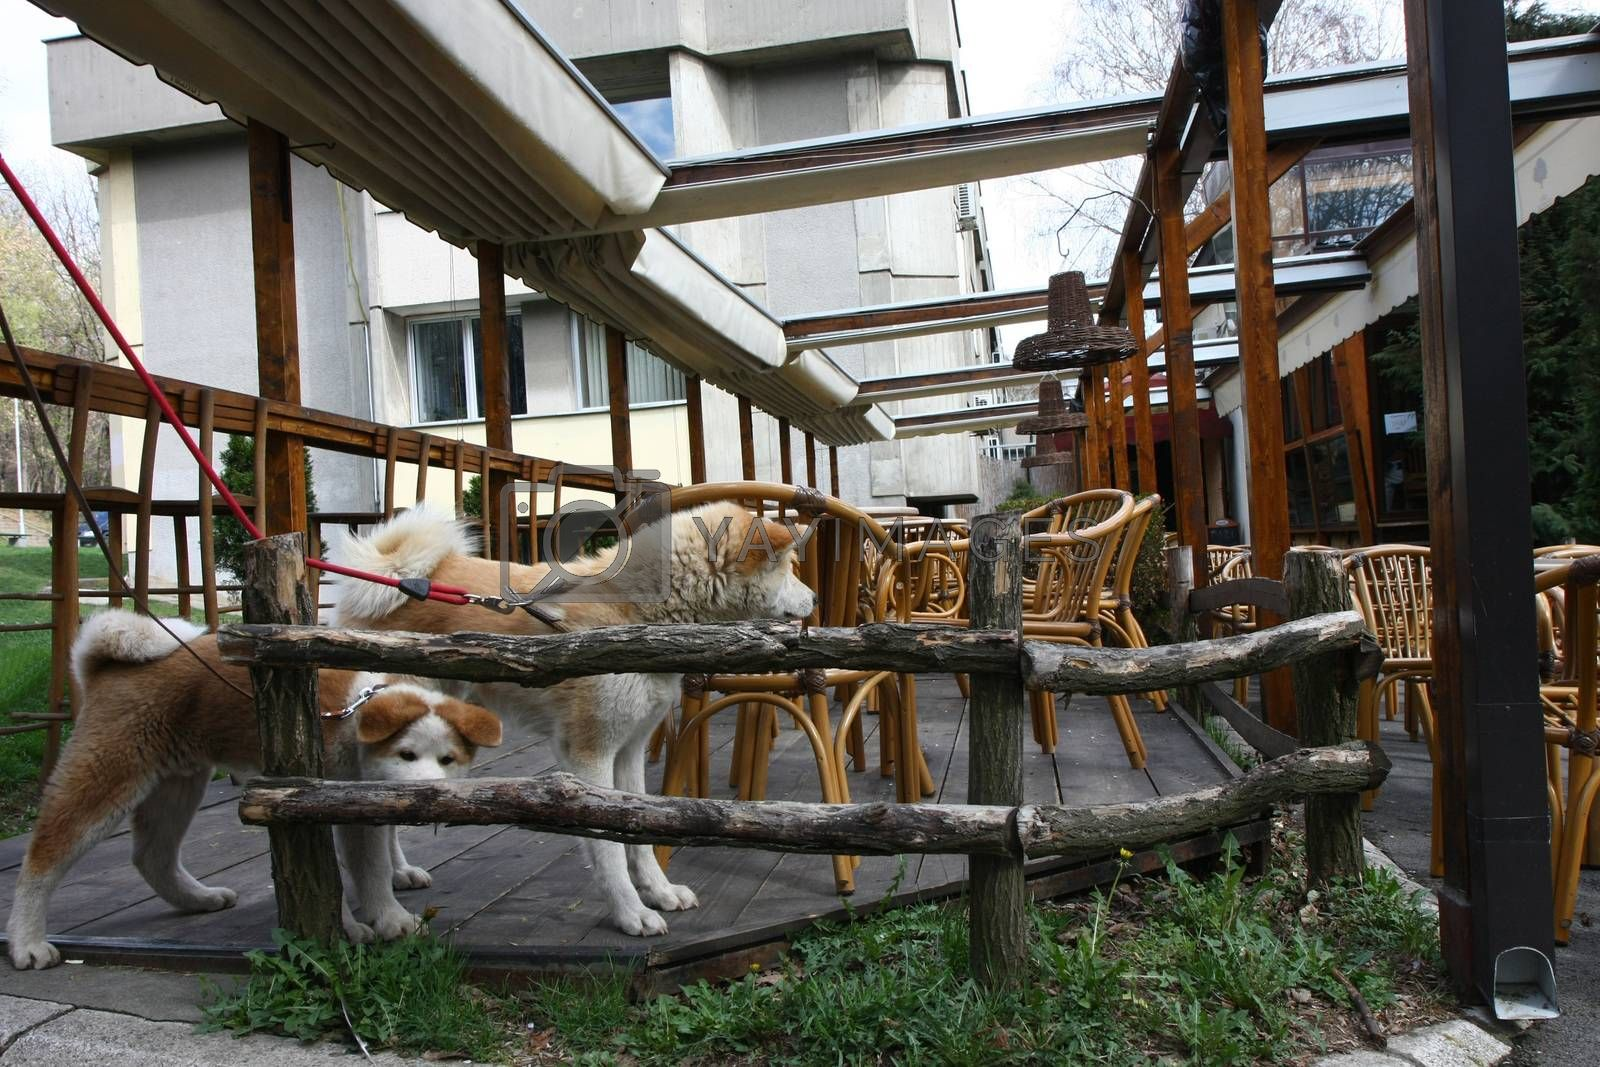 Akita Inu dogs trying to get in cafe